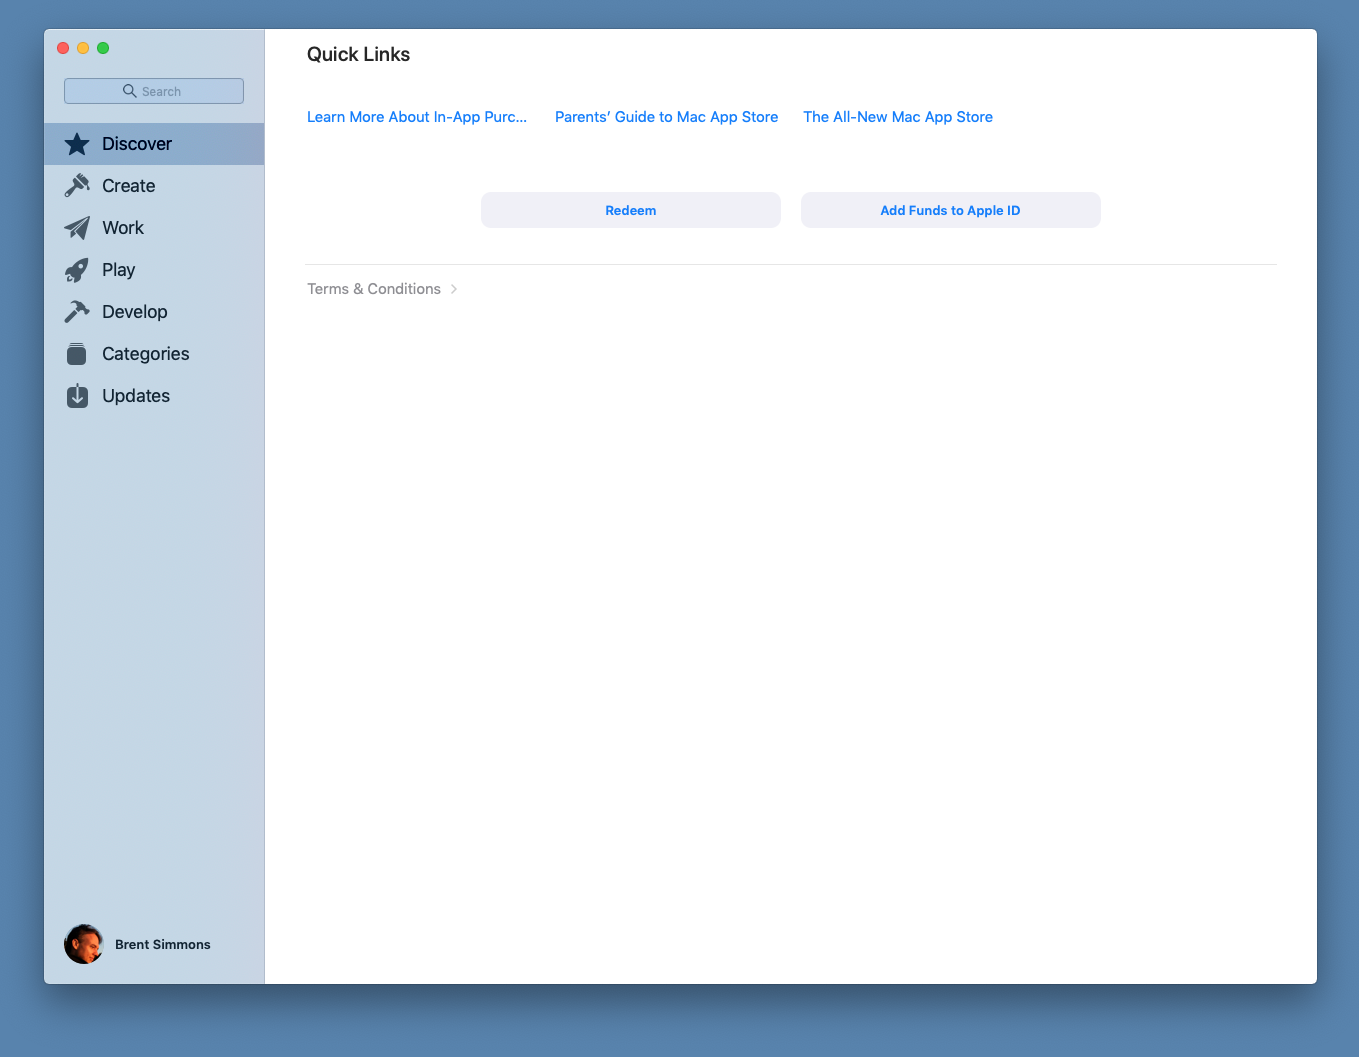 Screenshot of Mac App Store showing Quick Links instead of Discover tab